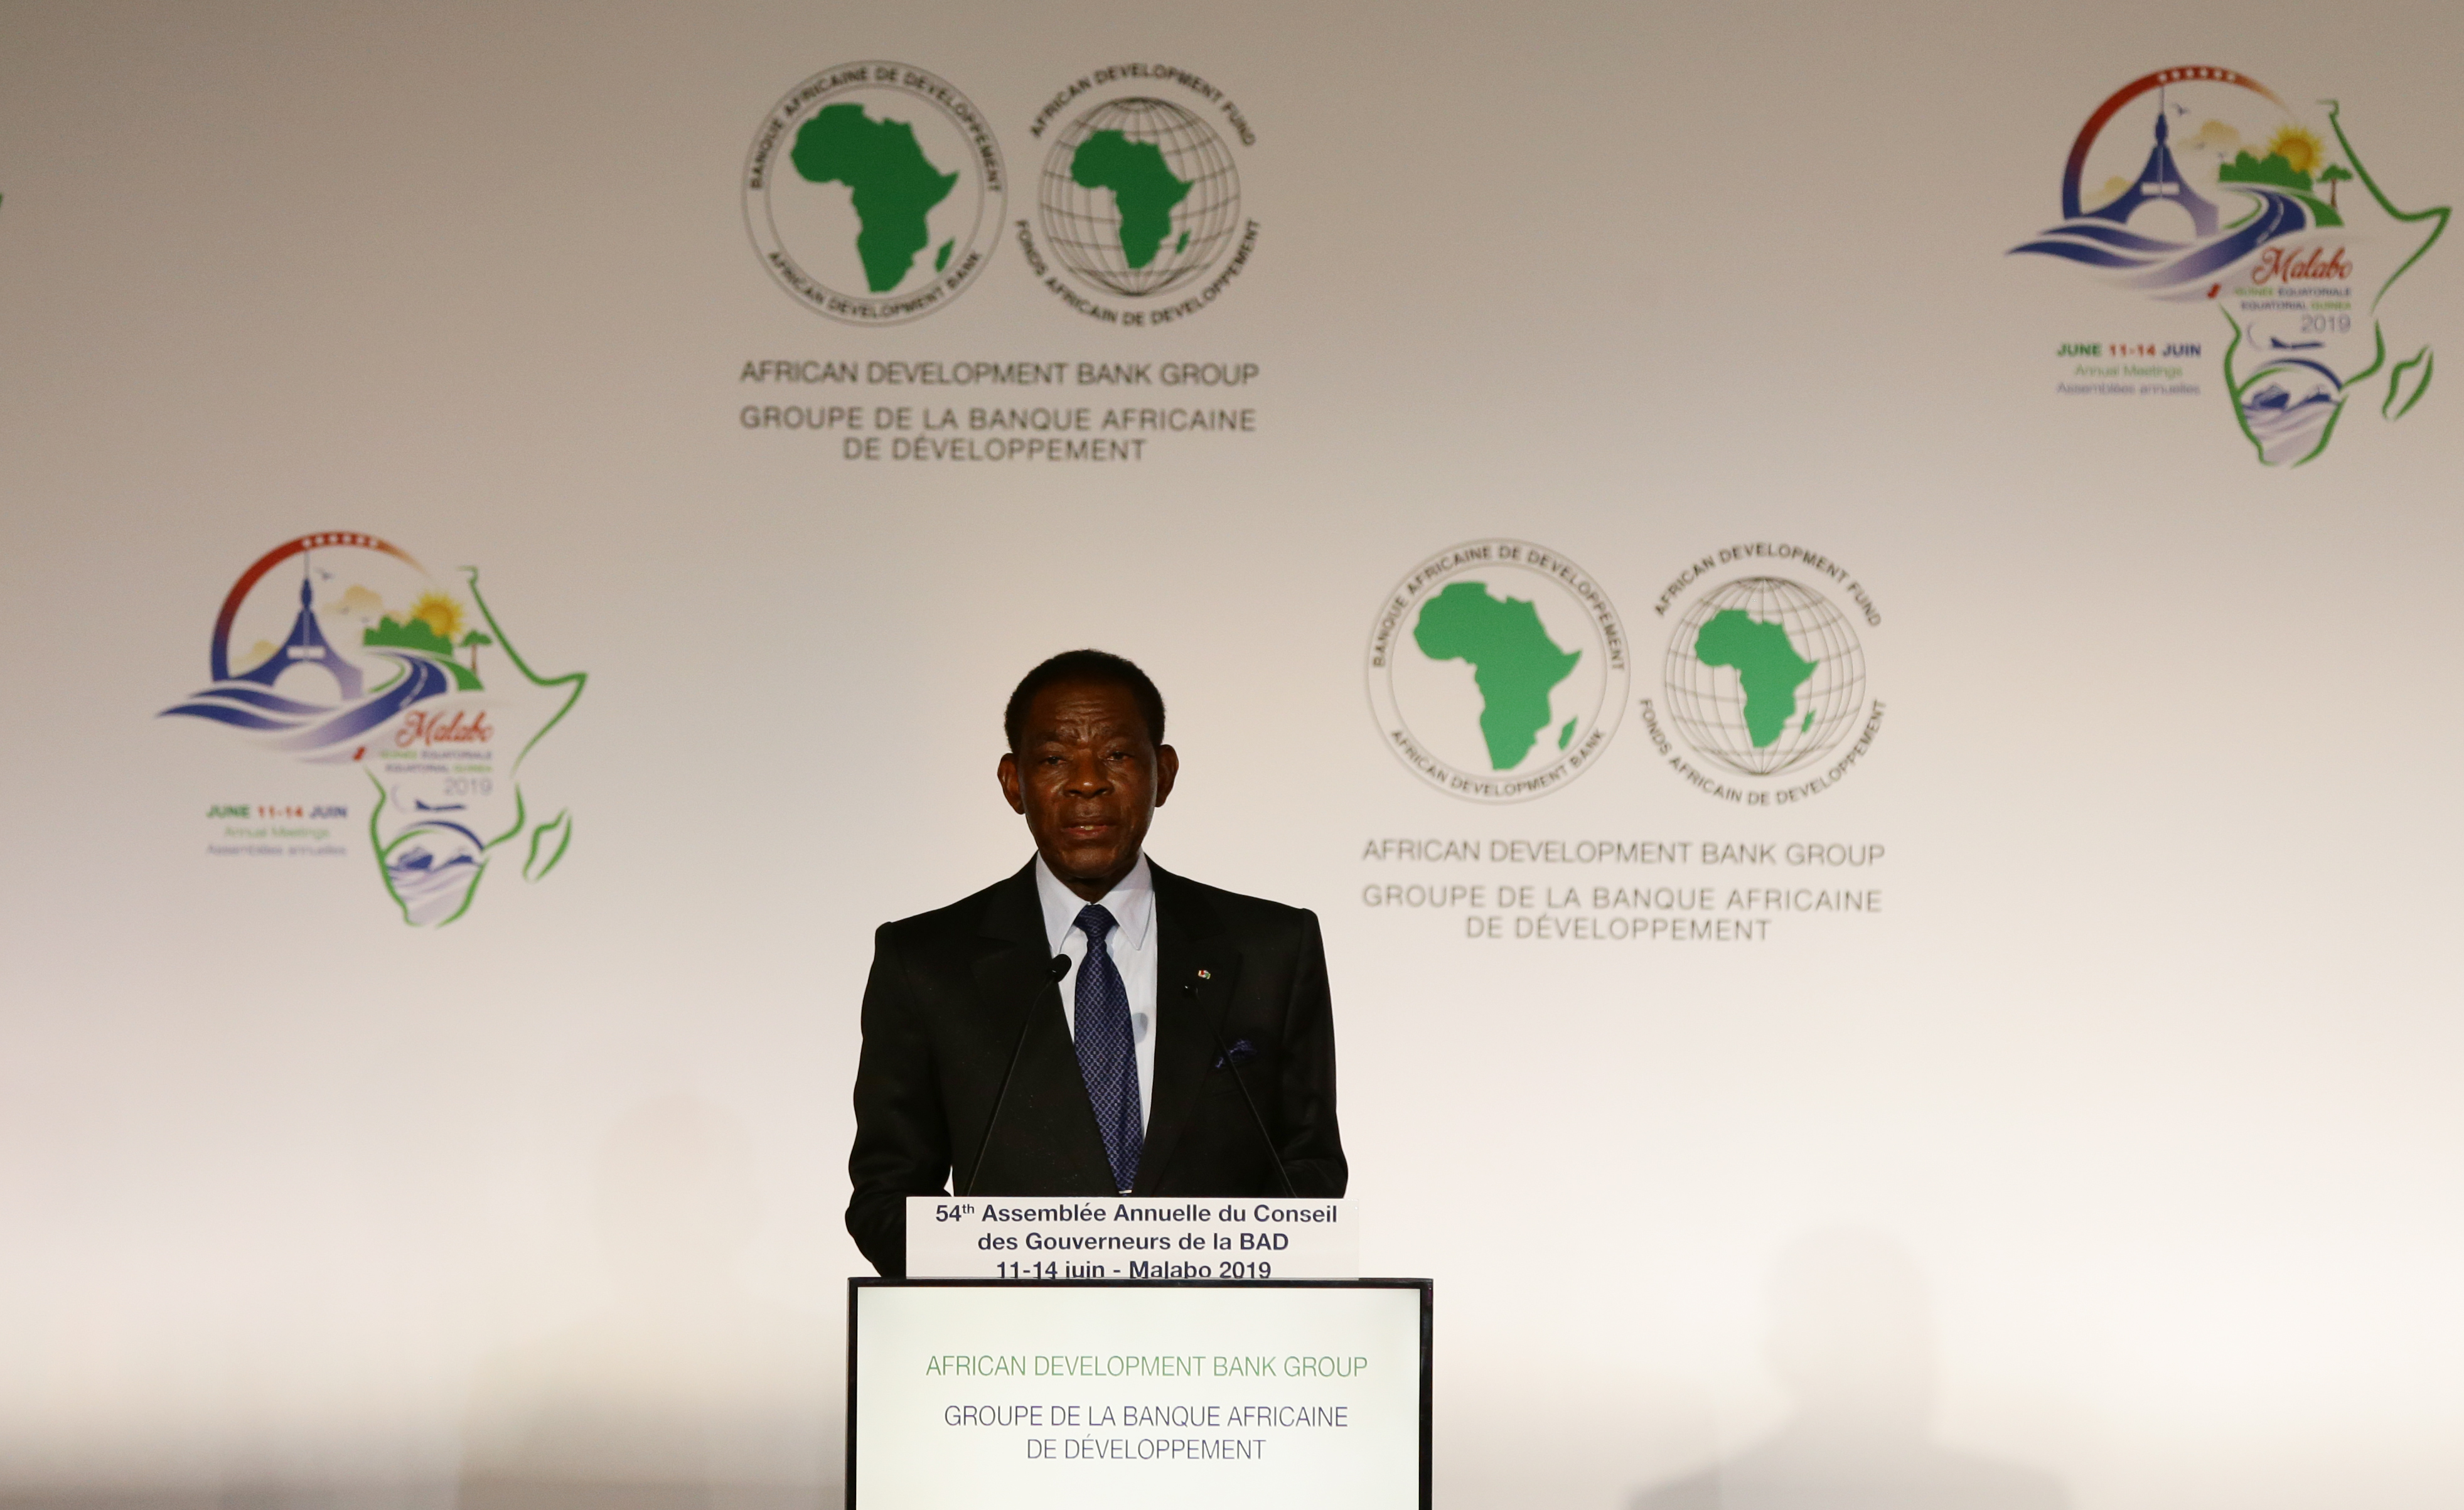 Central Africa to benefit from AfDB meetings in Malabo